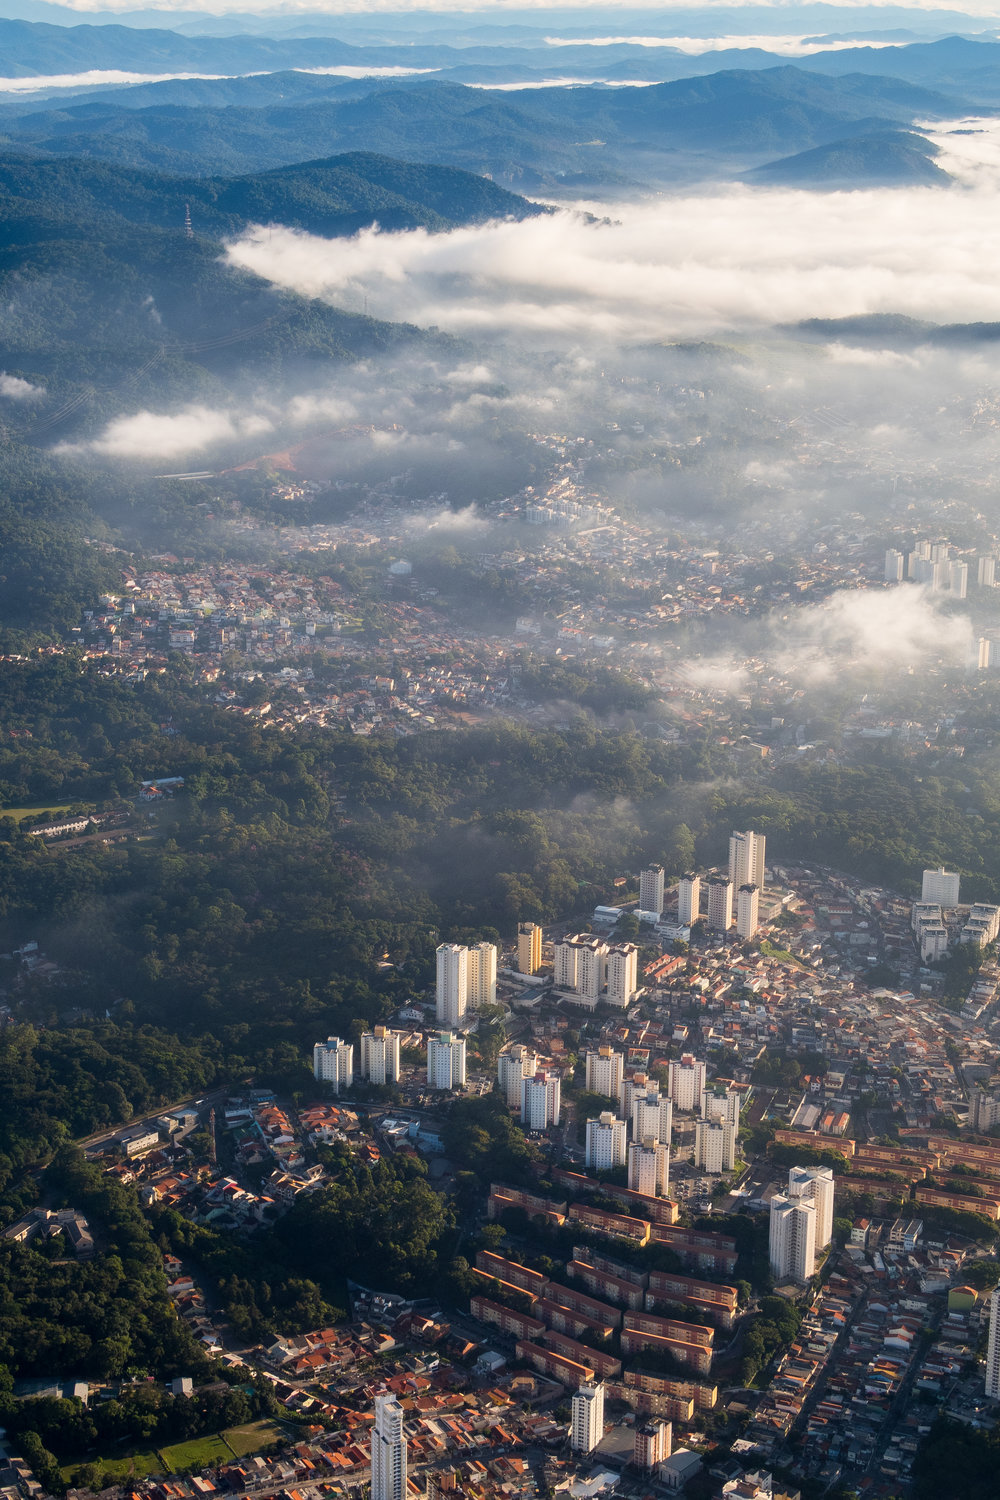 Sao Paulo from the sky